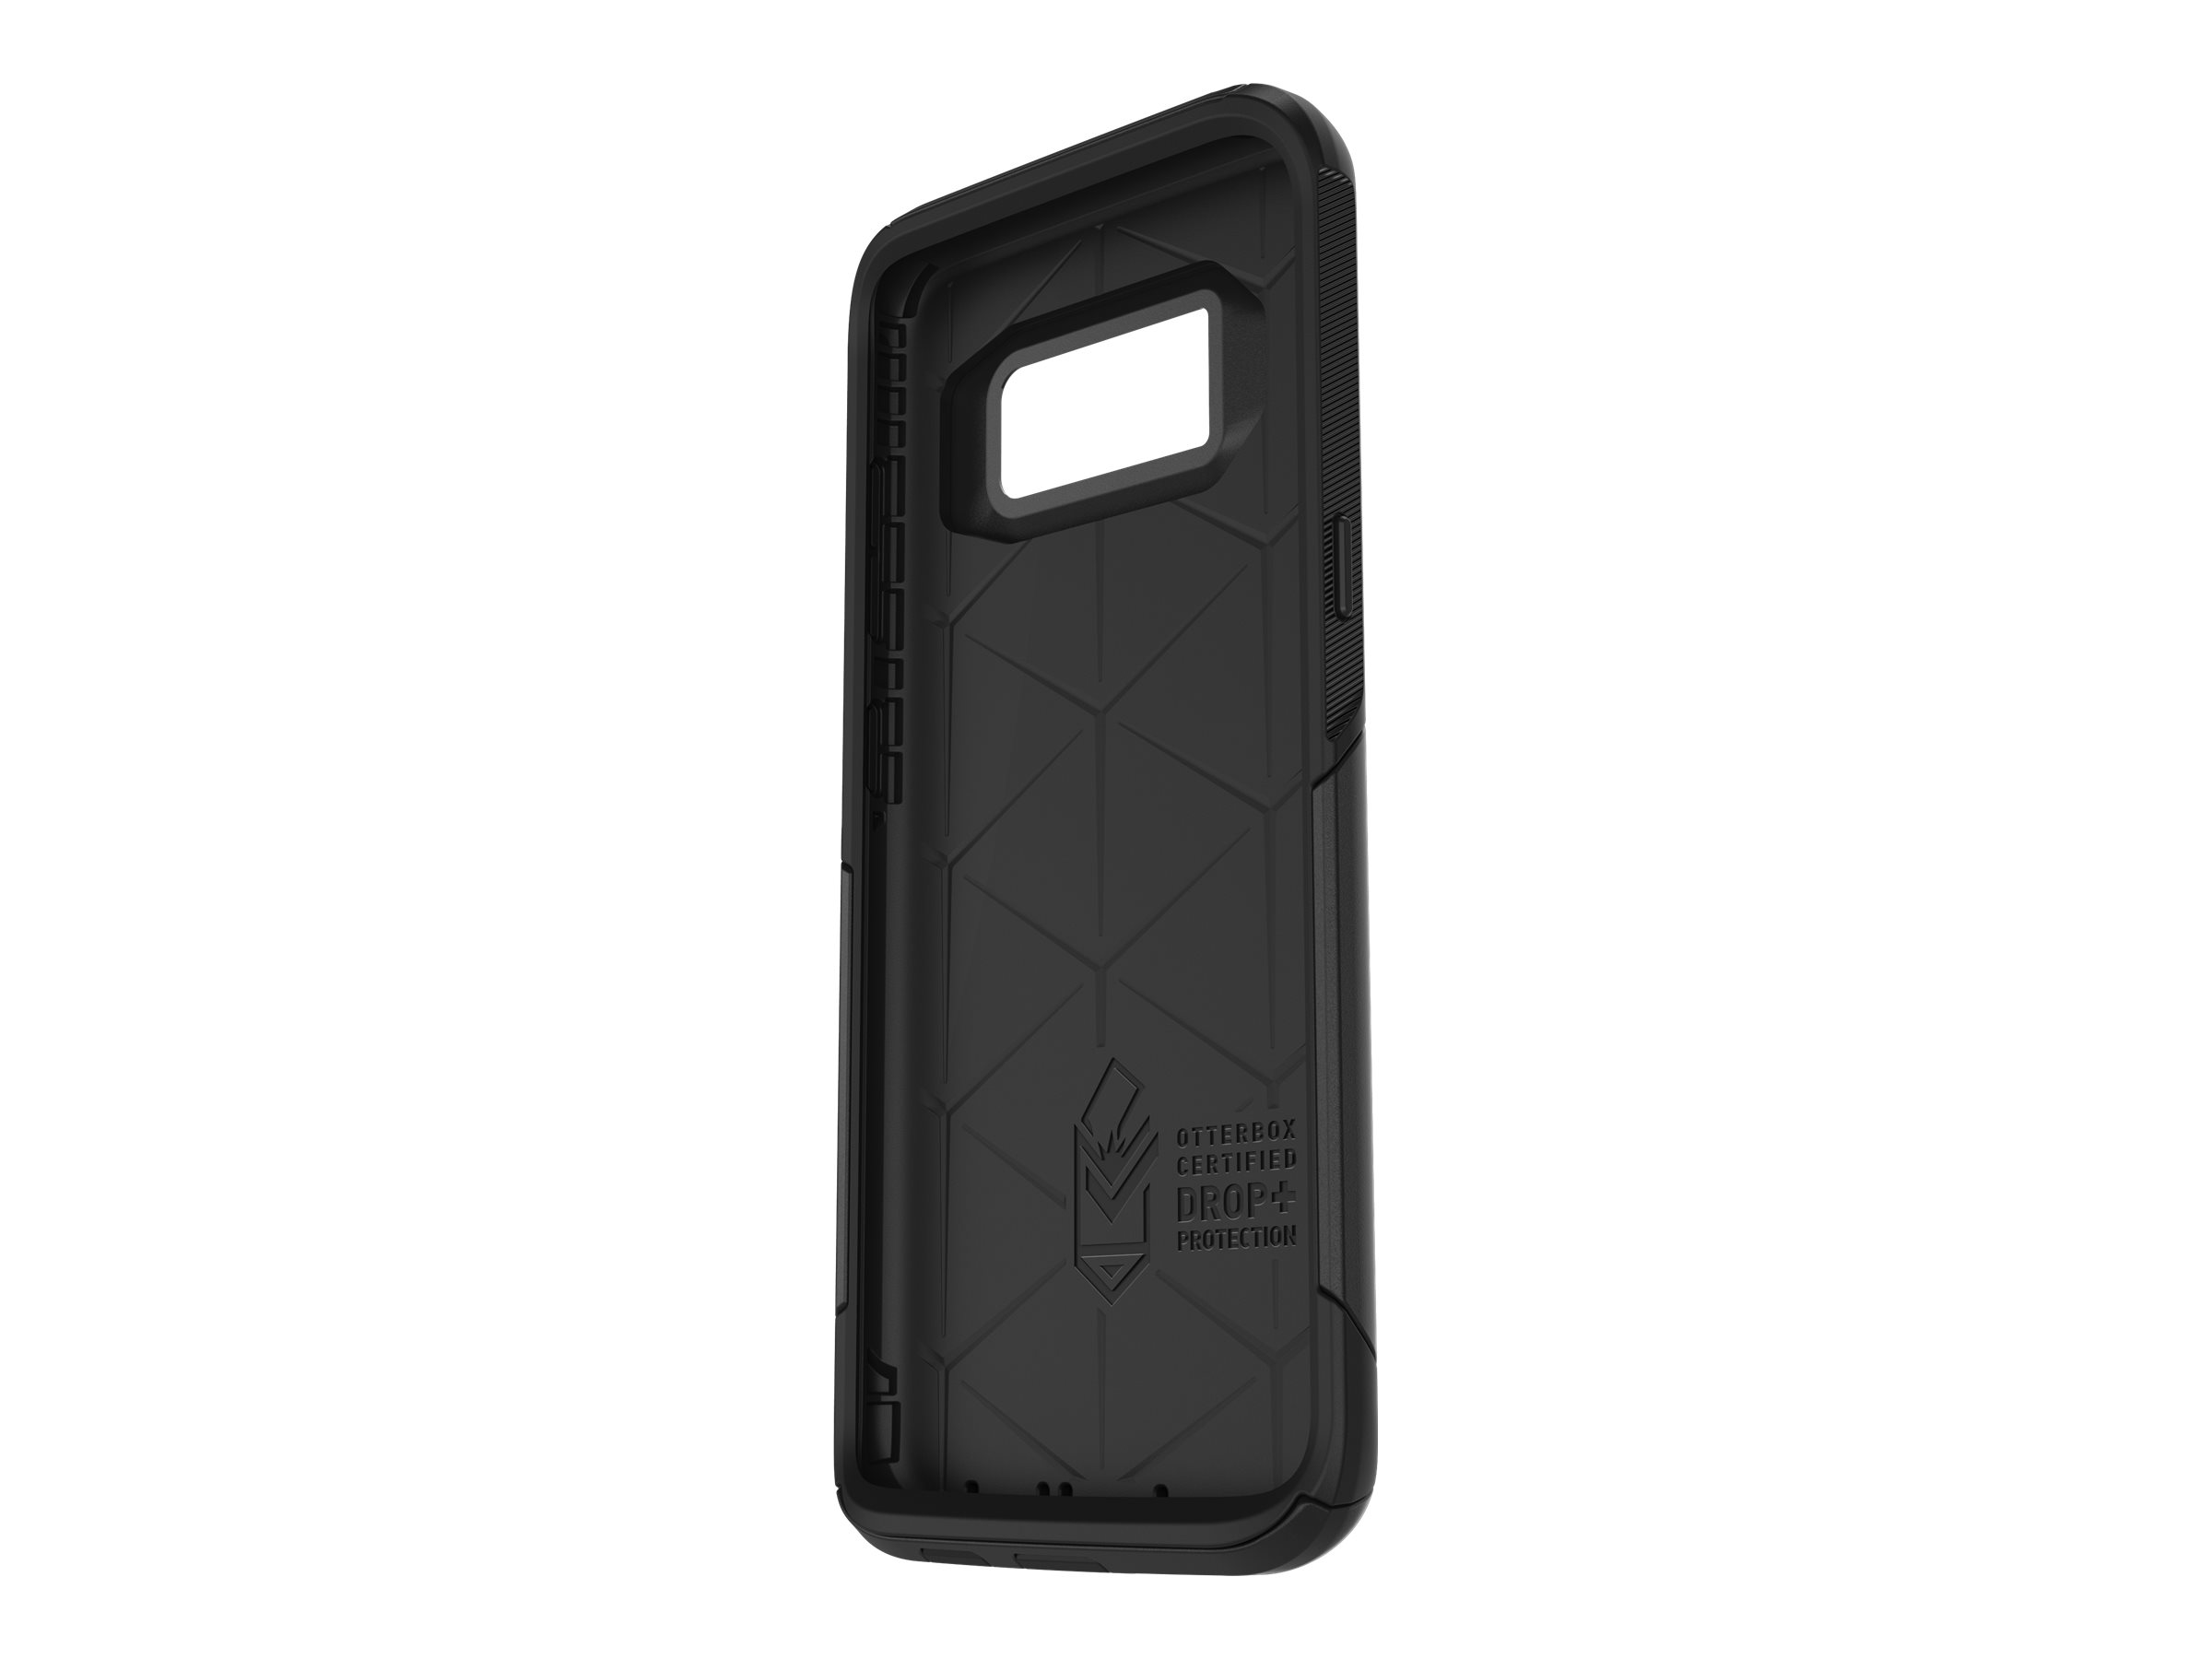 OtterBox Commuter Samsung Galaxy S8 - Retail - back cover for cell phone